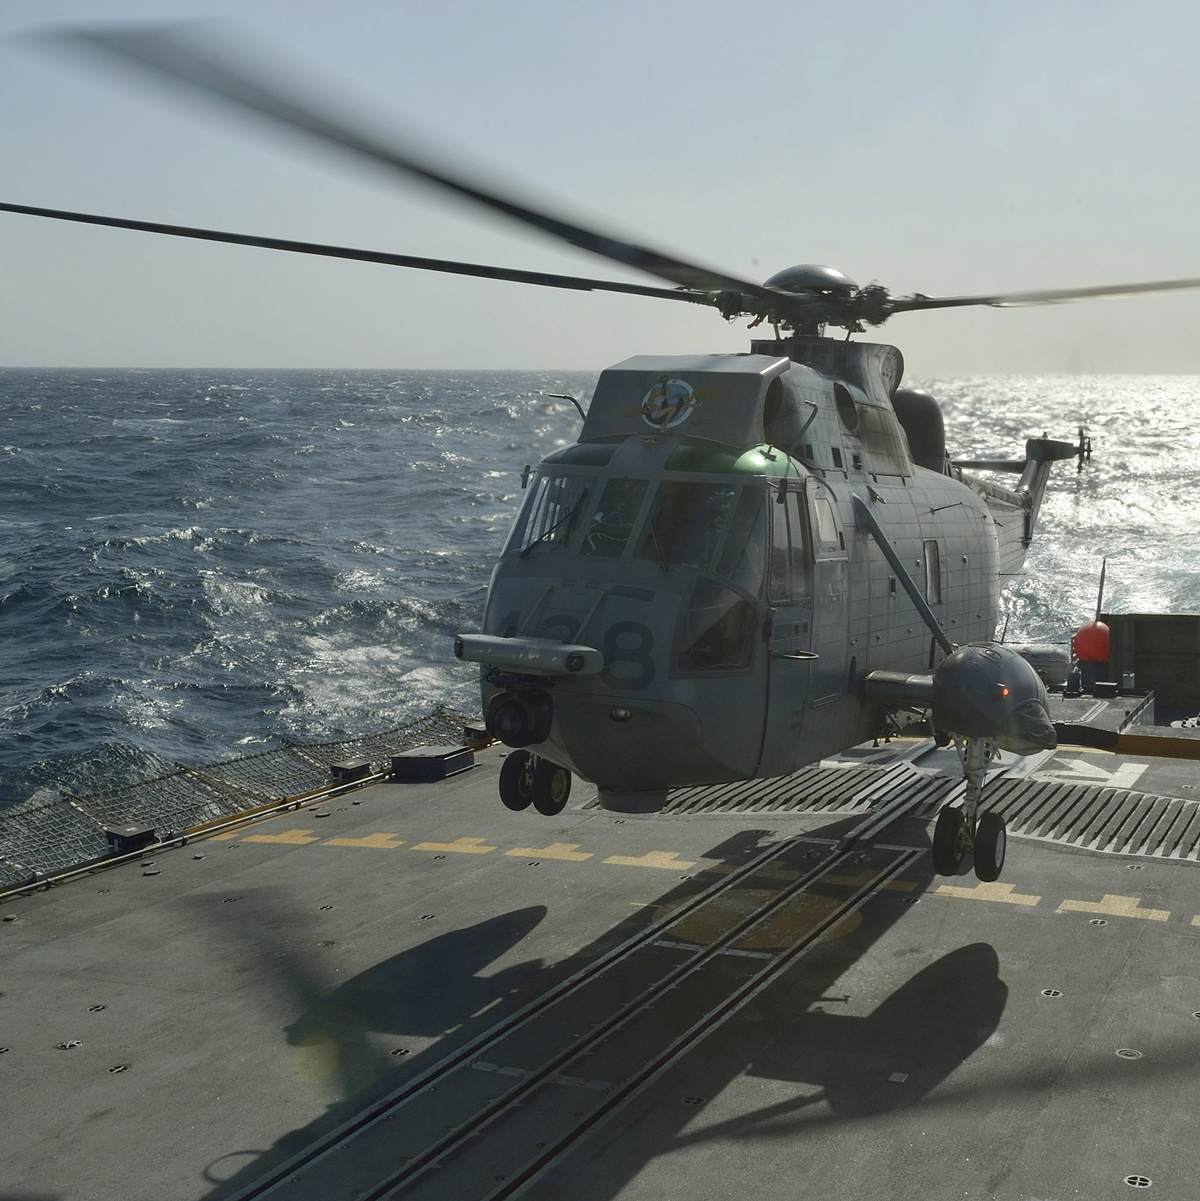 A Sea King helicopter lands on the flight deck of a Royal Canadian Navy ship.